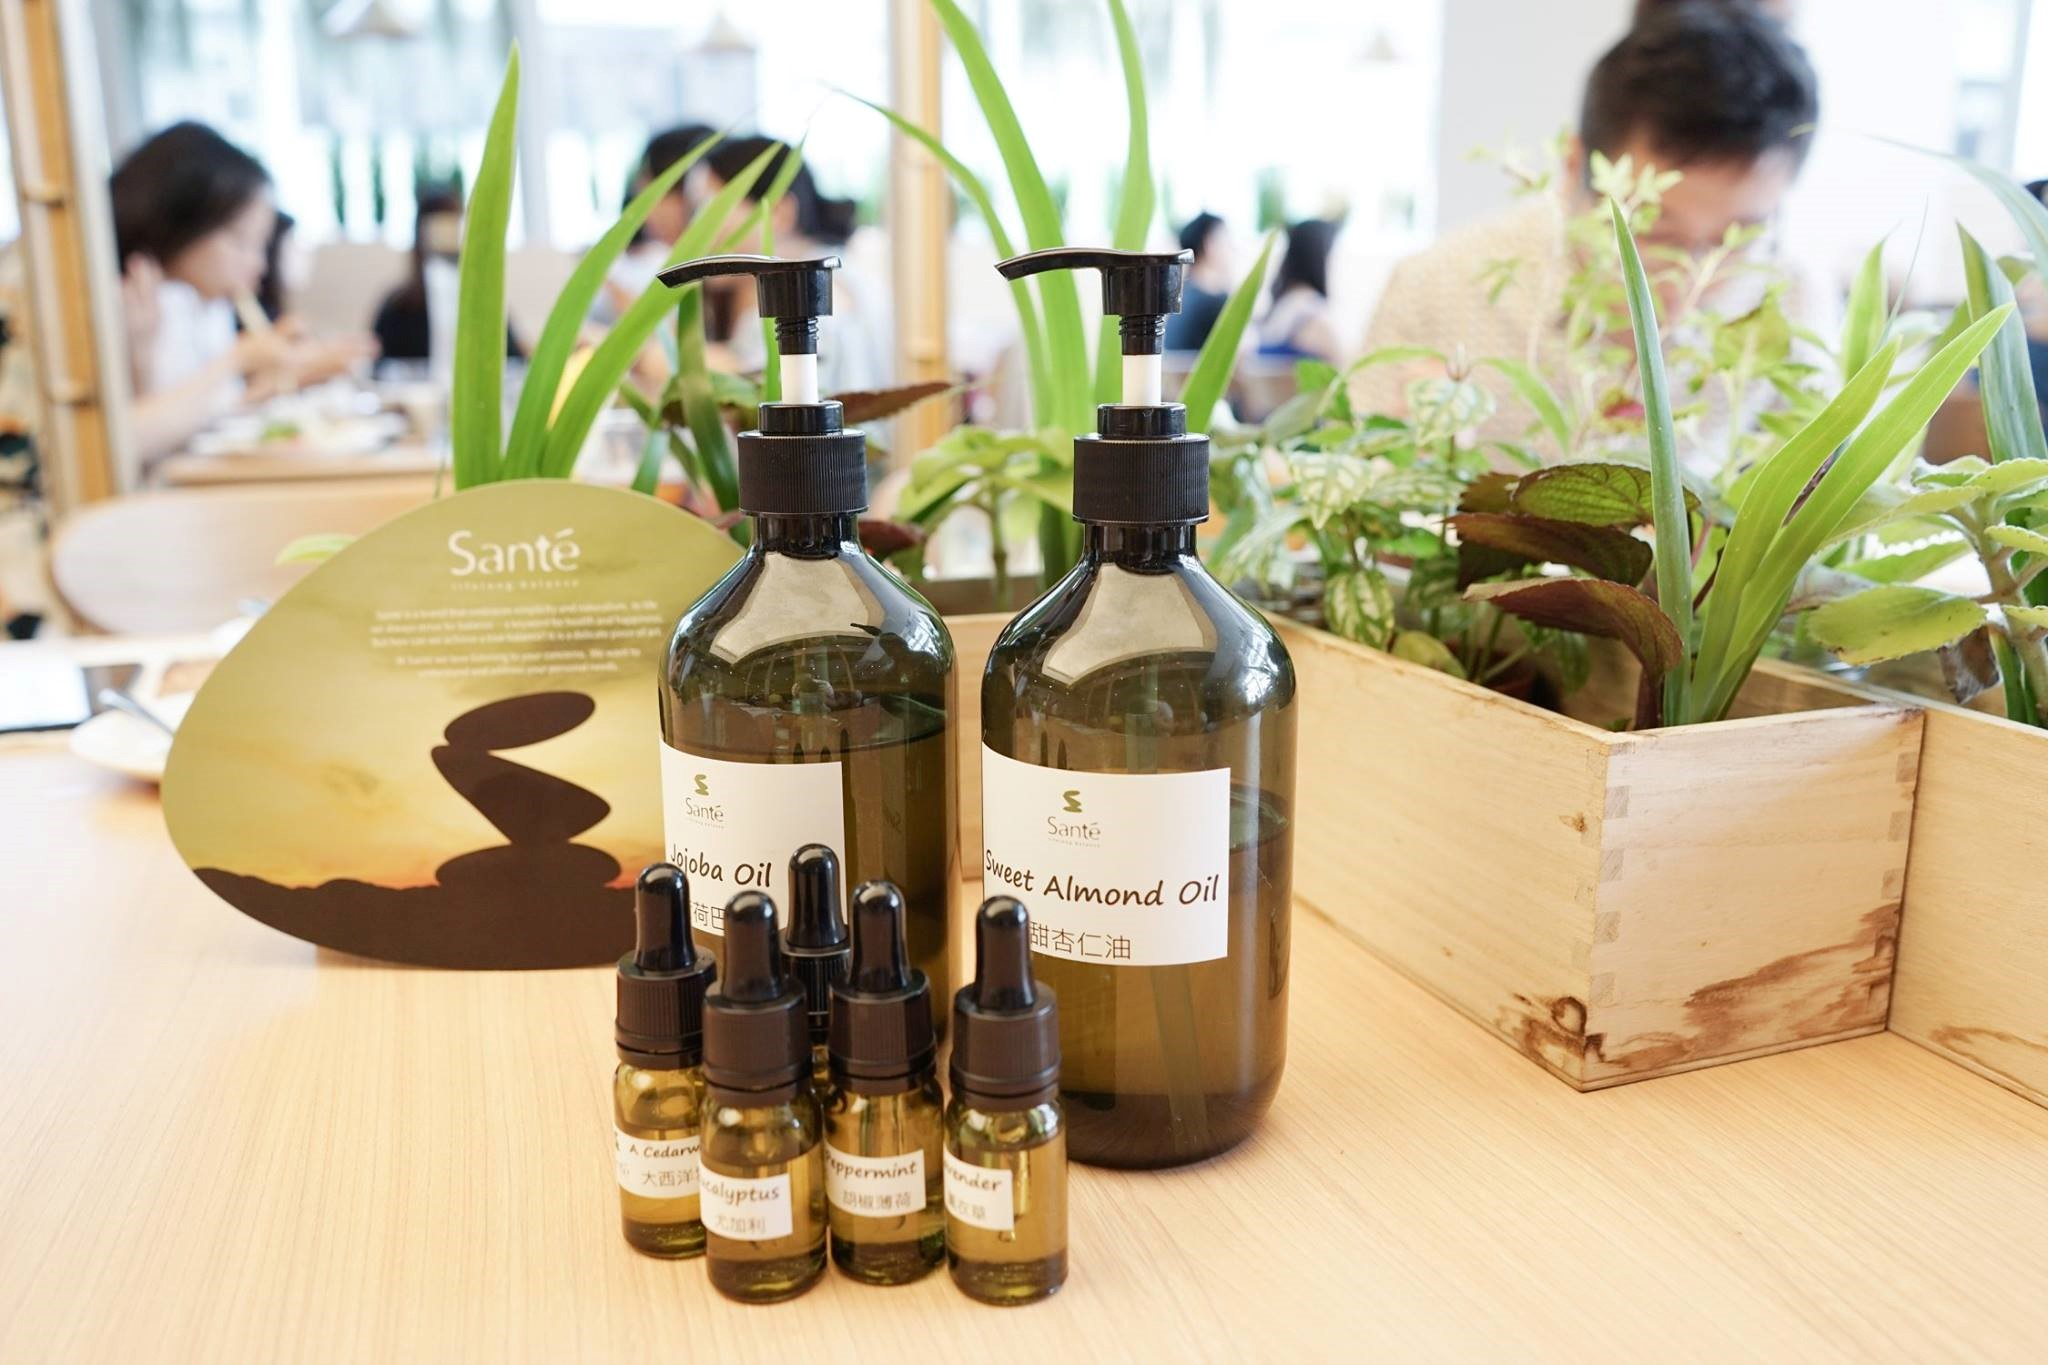 A Unique Creation Experience with Essential Oils - WELLNESS - K11